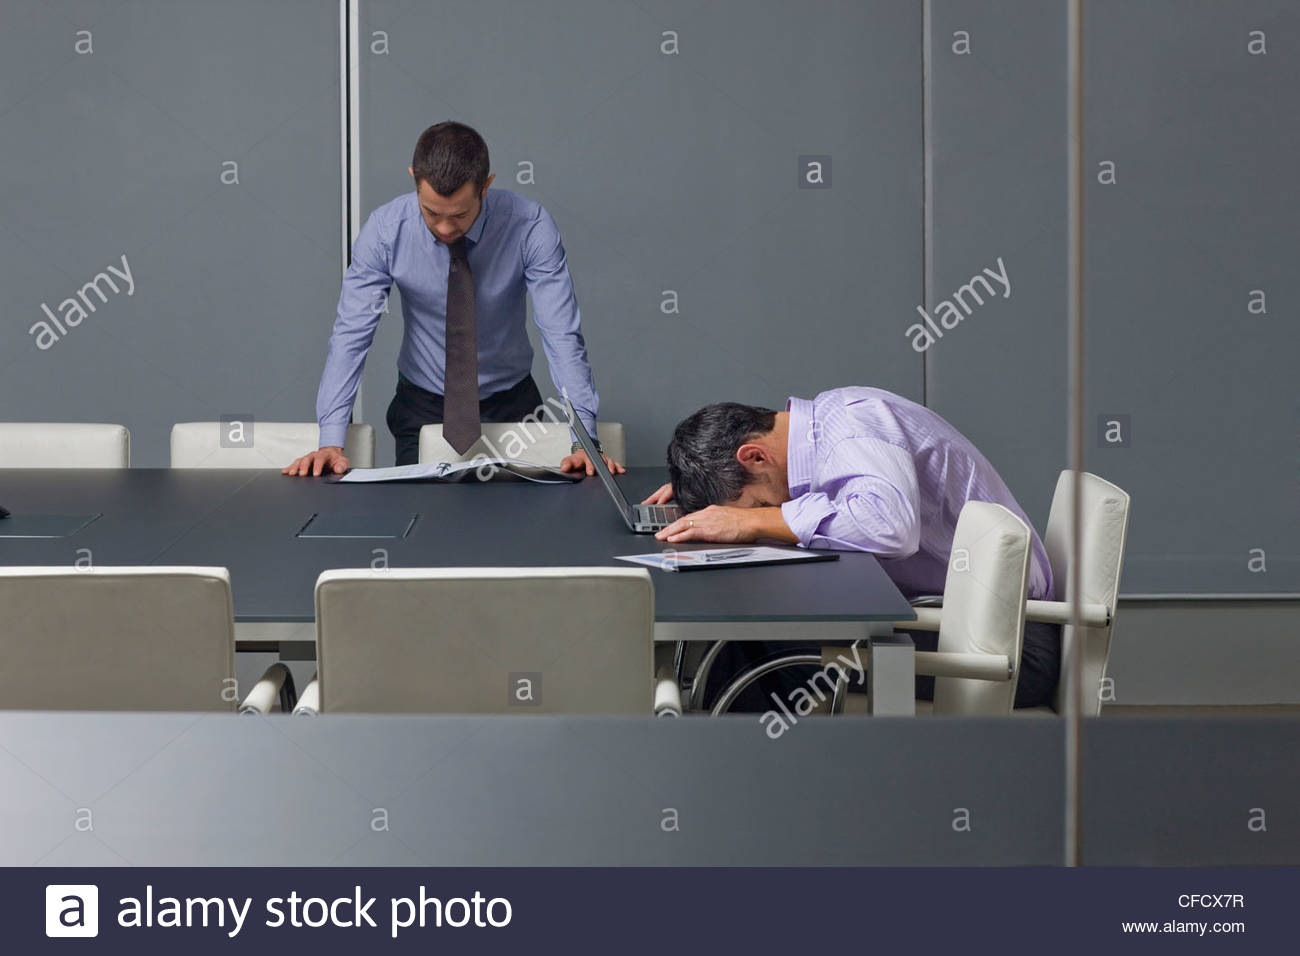 Businessman reading paperwork near co-worker sleeping on laptop in conference room - Stock Image